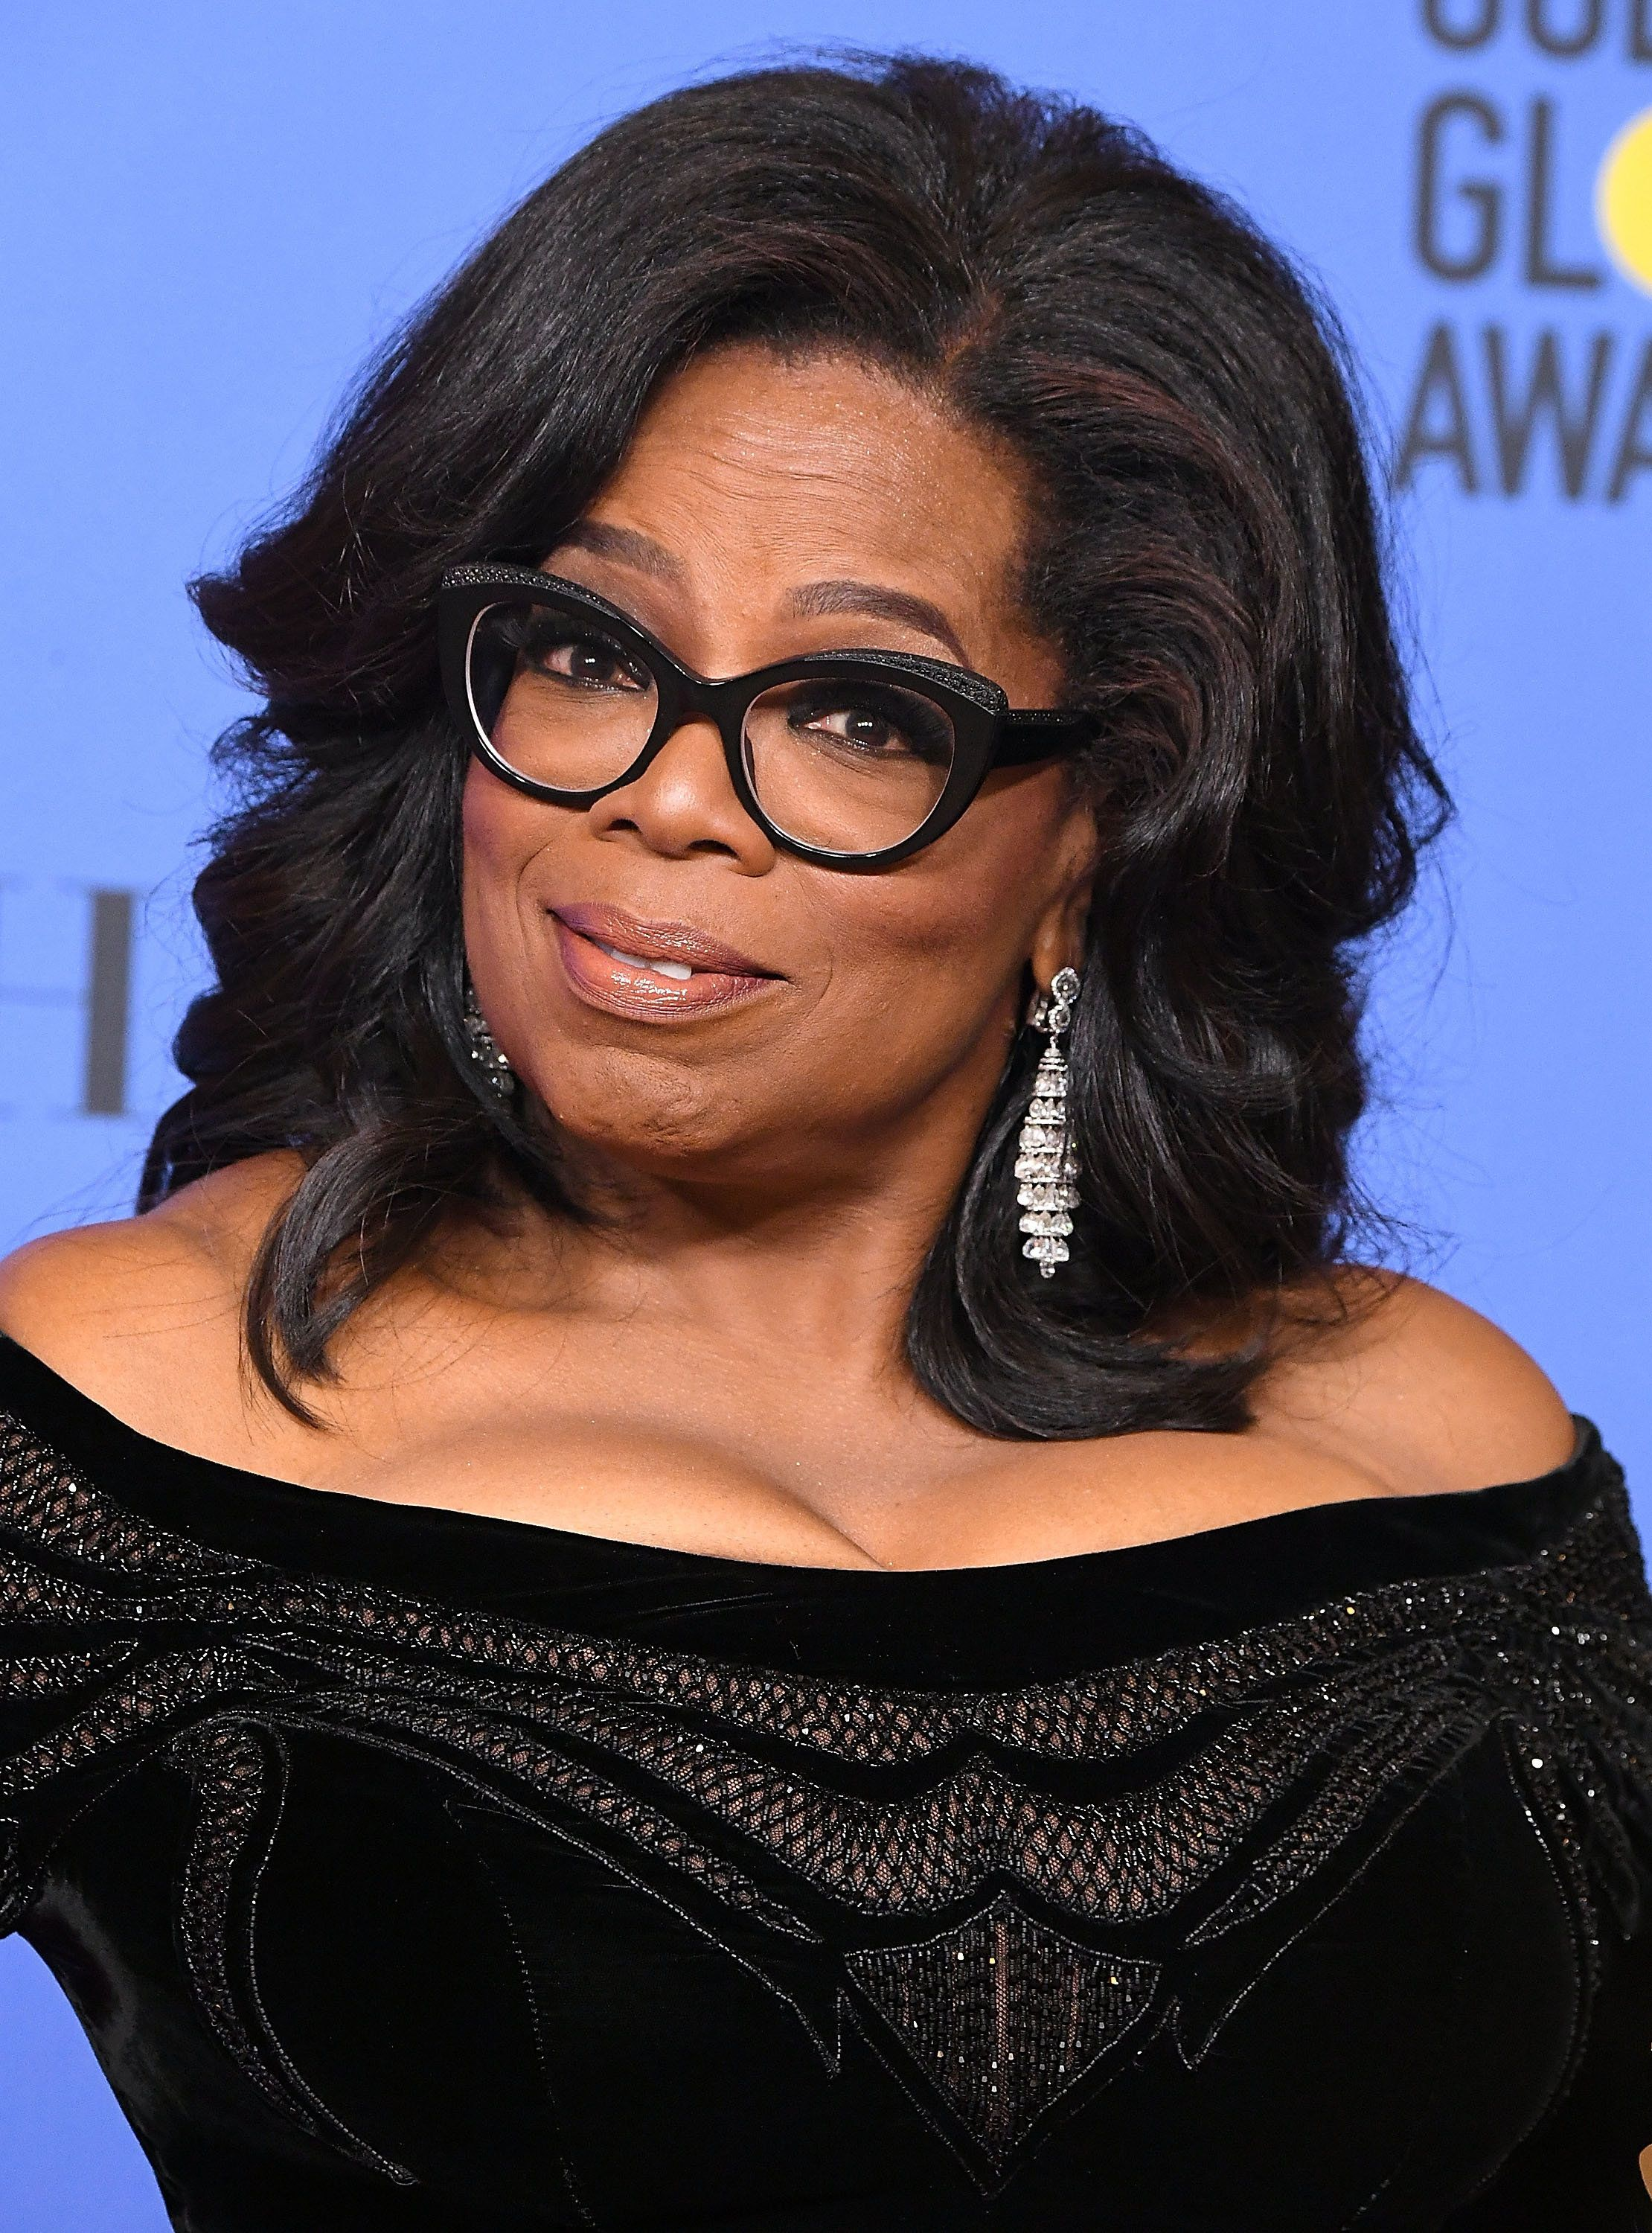 BEVERLY HILLS, CA - JANUARY 07:  Oprah Winfrey poses at the 75th Annual Golden Globe Awards at The Beverly Hilton Hotel on January 7, 2018 in Beverly Hills, California.  (Photo by Steve Granitz/WireImage)